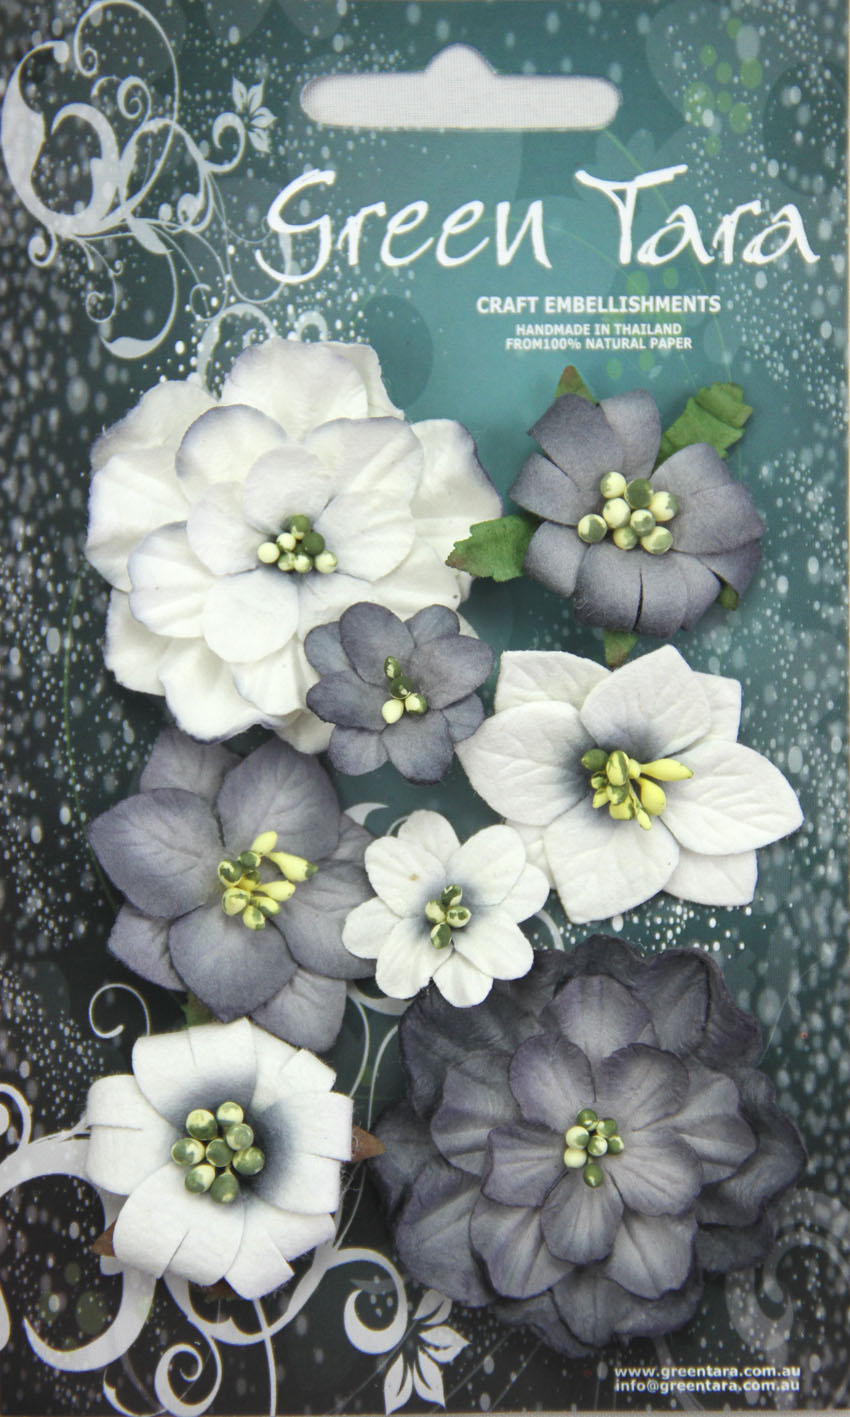 Fantasy Blooms - Pack of 8 Co-ordinated Flowers, BLACK/WHITE